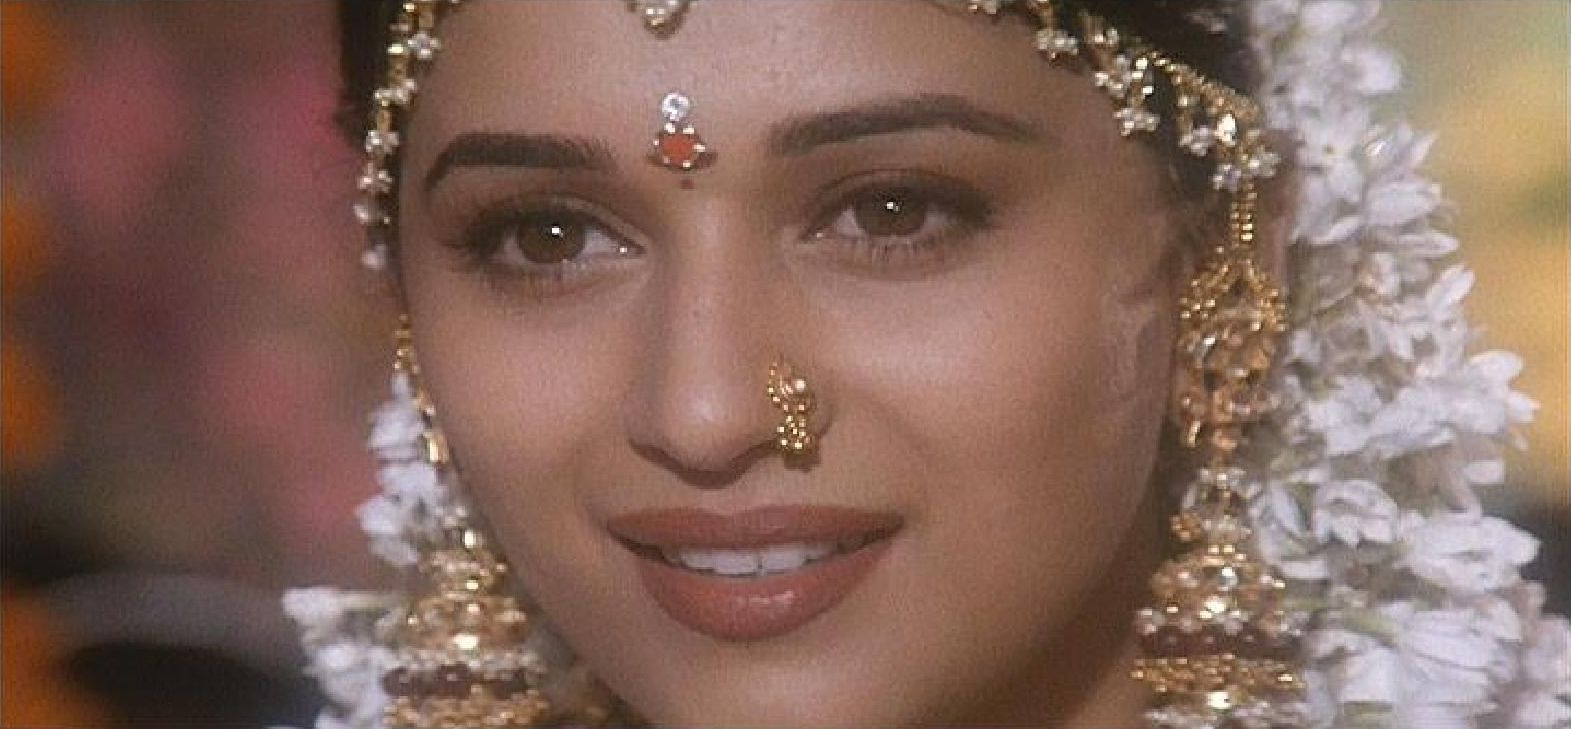 Madhuri Dixit Images Prem Granth Hd Wallpaper And Background Photos